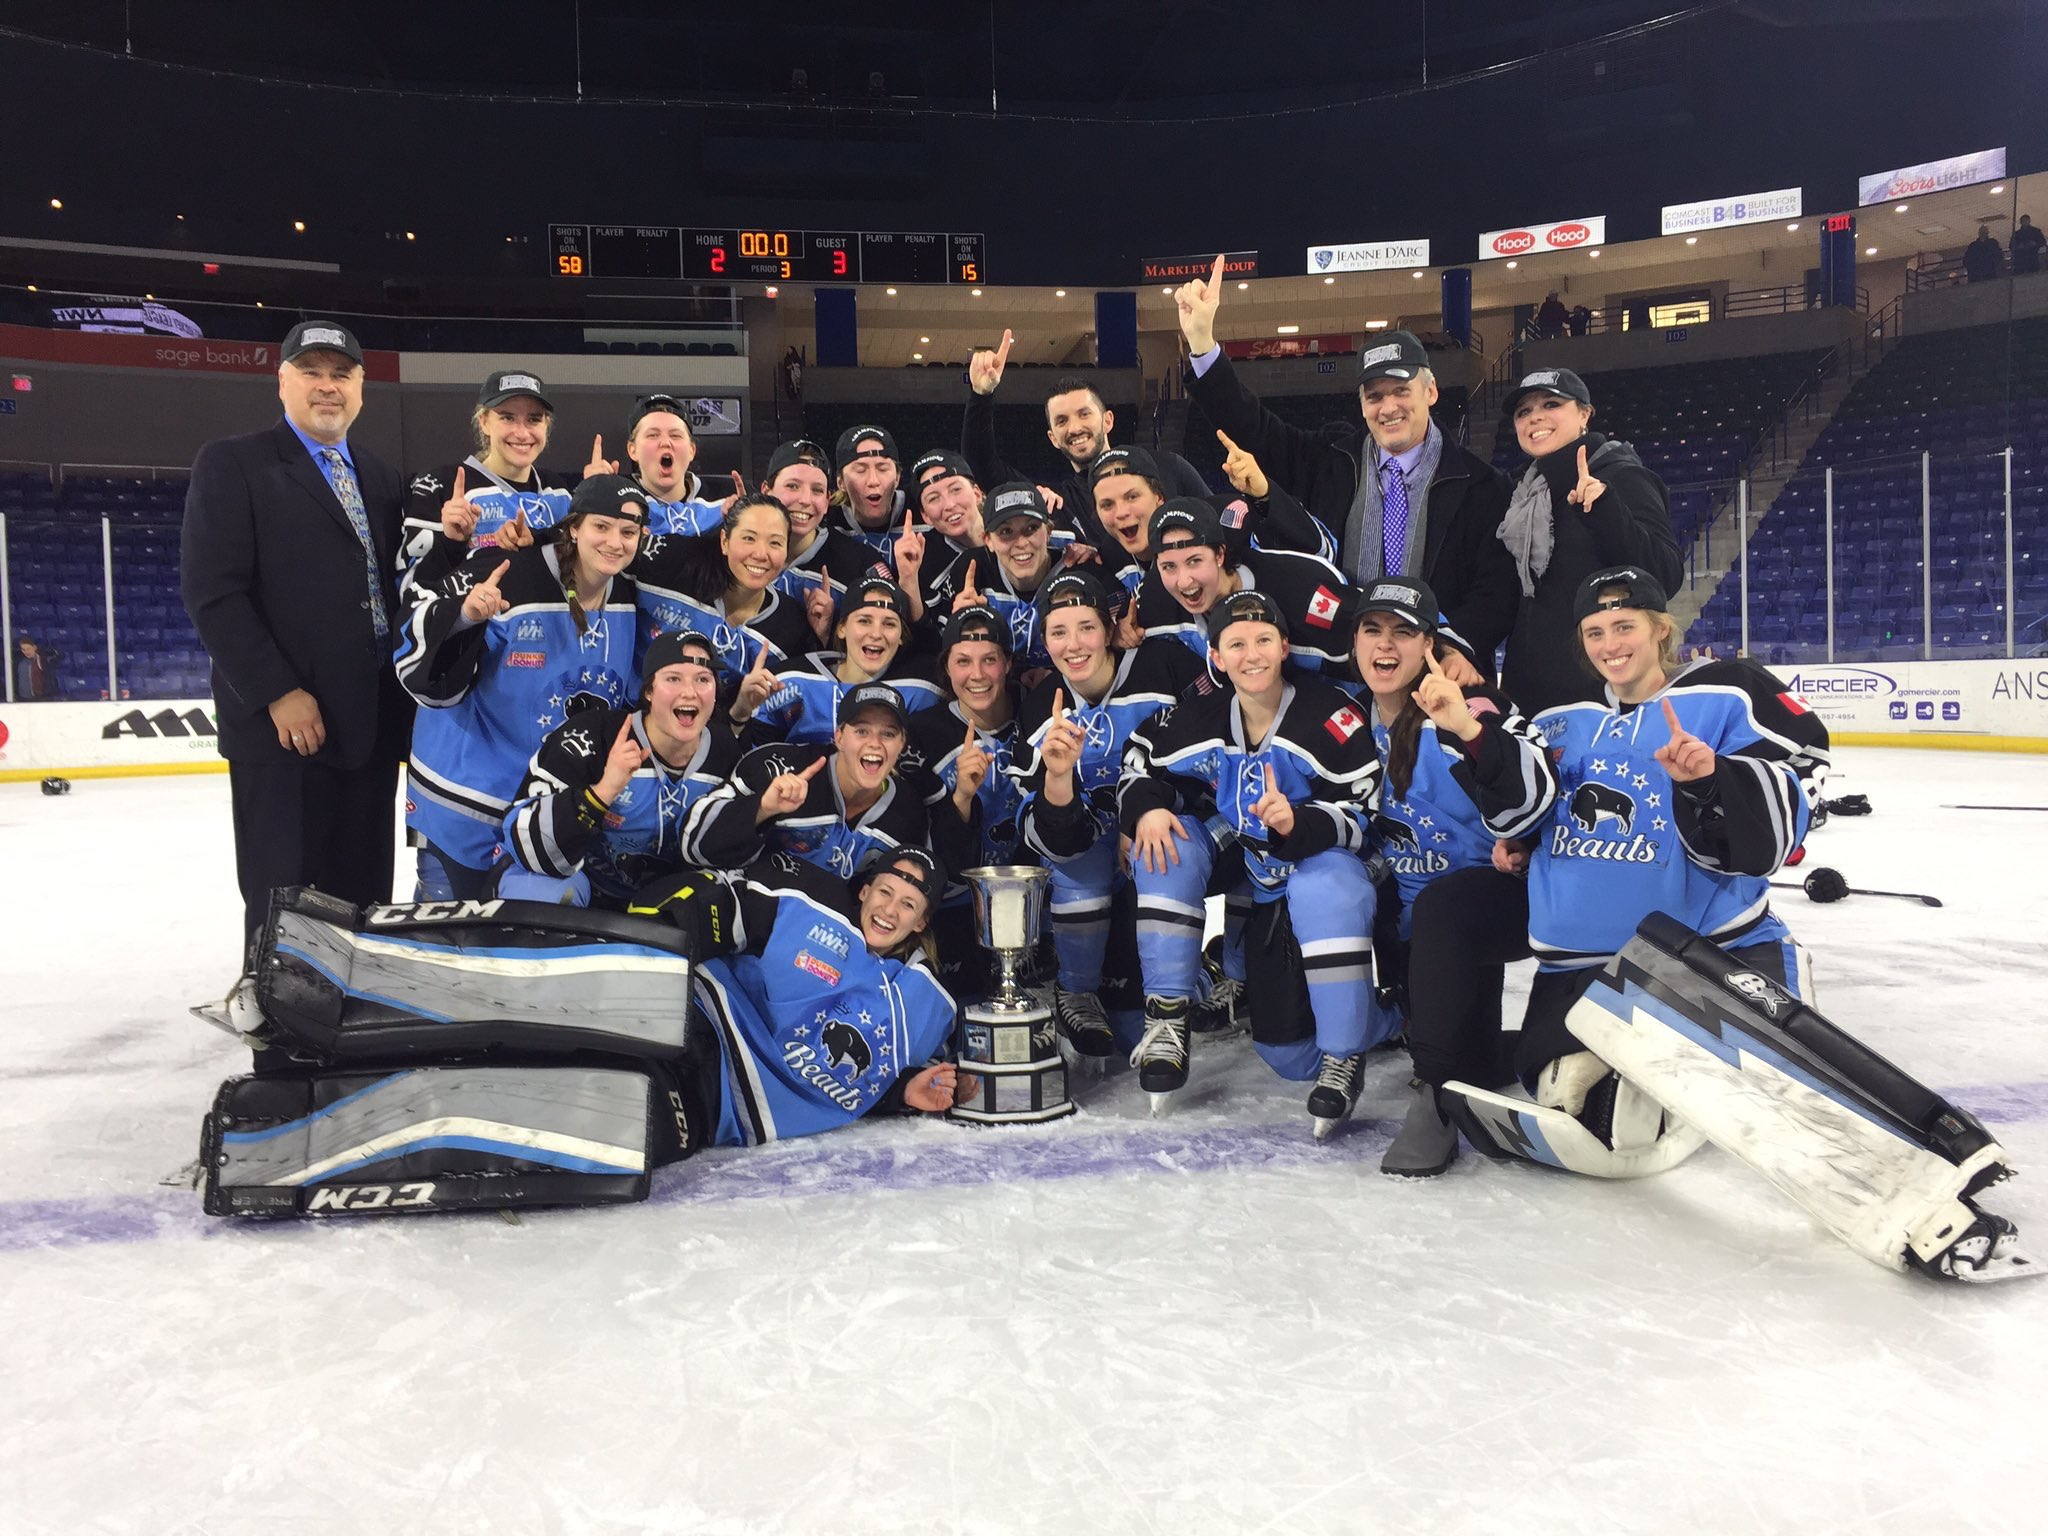 The Buffalo Beauts knocked off the Boston Pride, 3-2, to win the Isobel Cup. (Photo via the Buffalo Beauts)